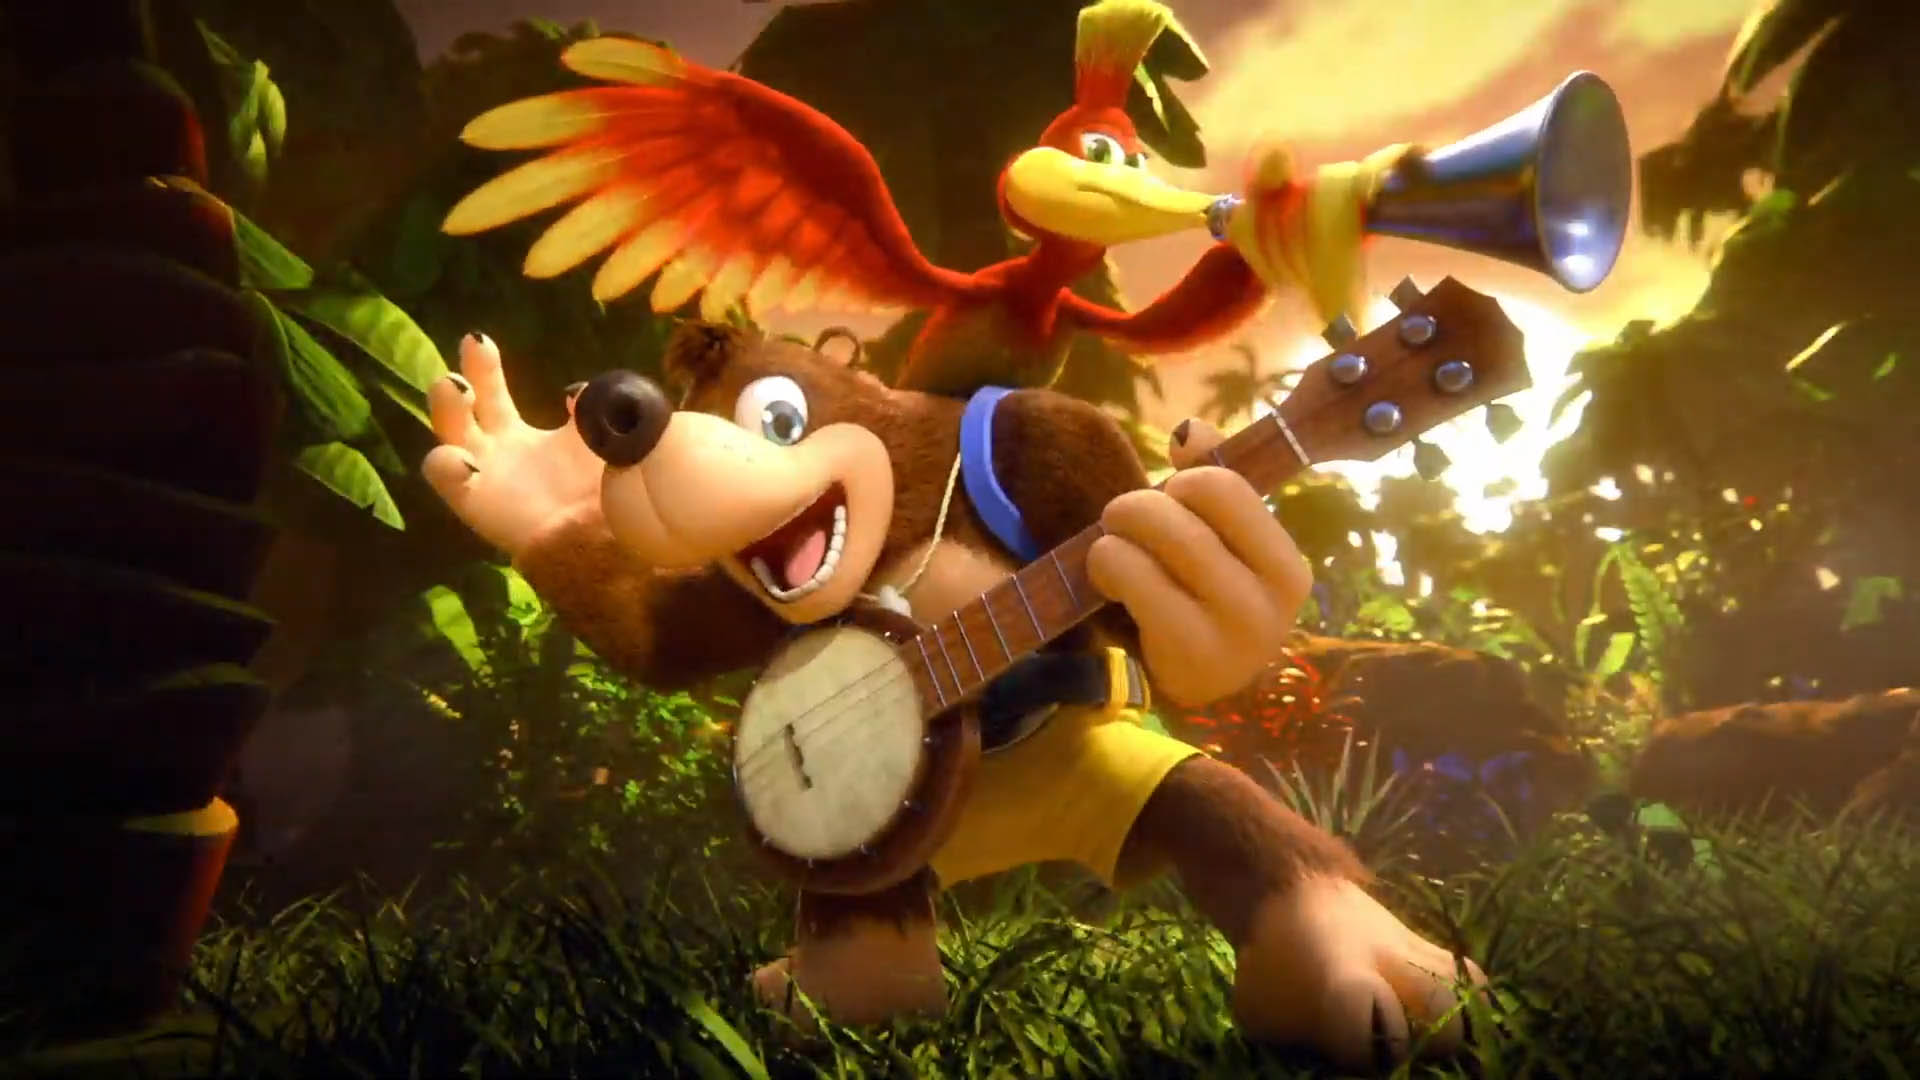 Animal Crossing Fall Wallpaper Banjo Kazooie Are Raring To Go Confirmed For Super Smash